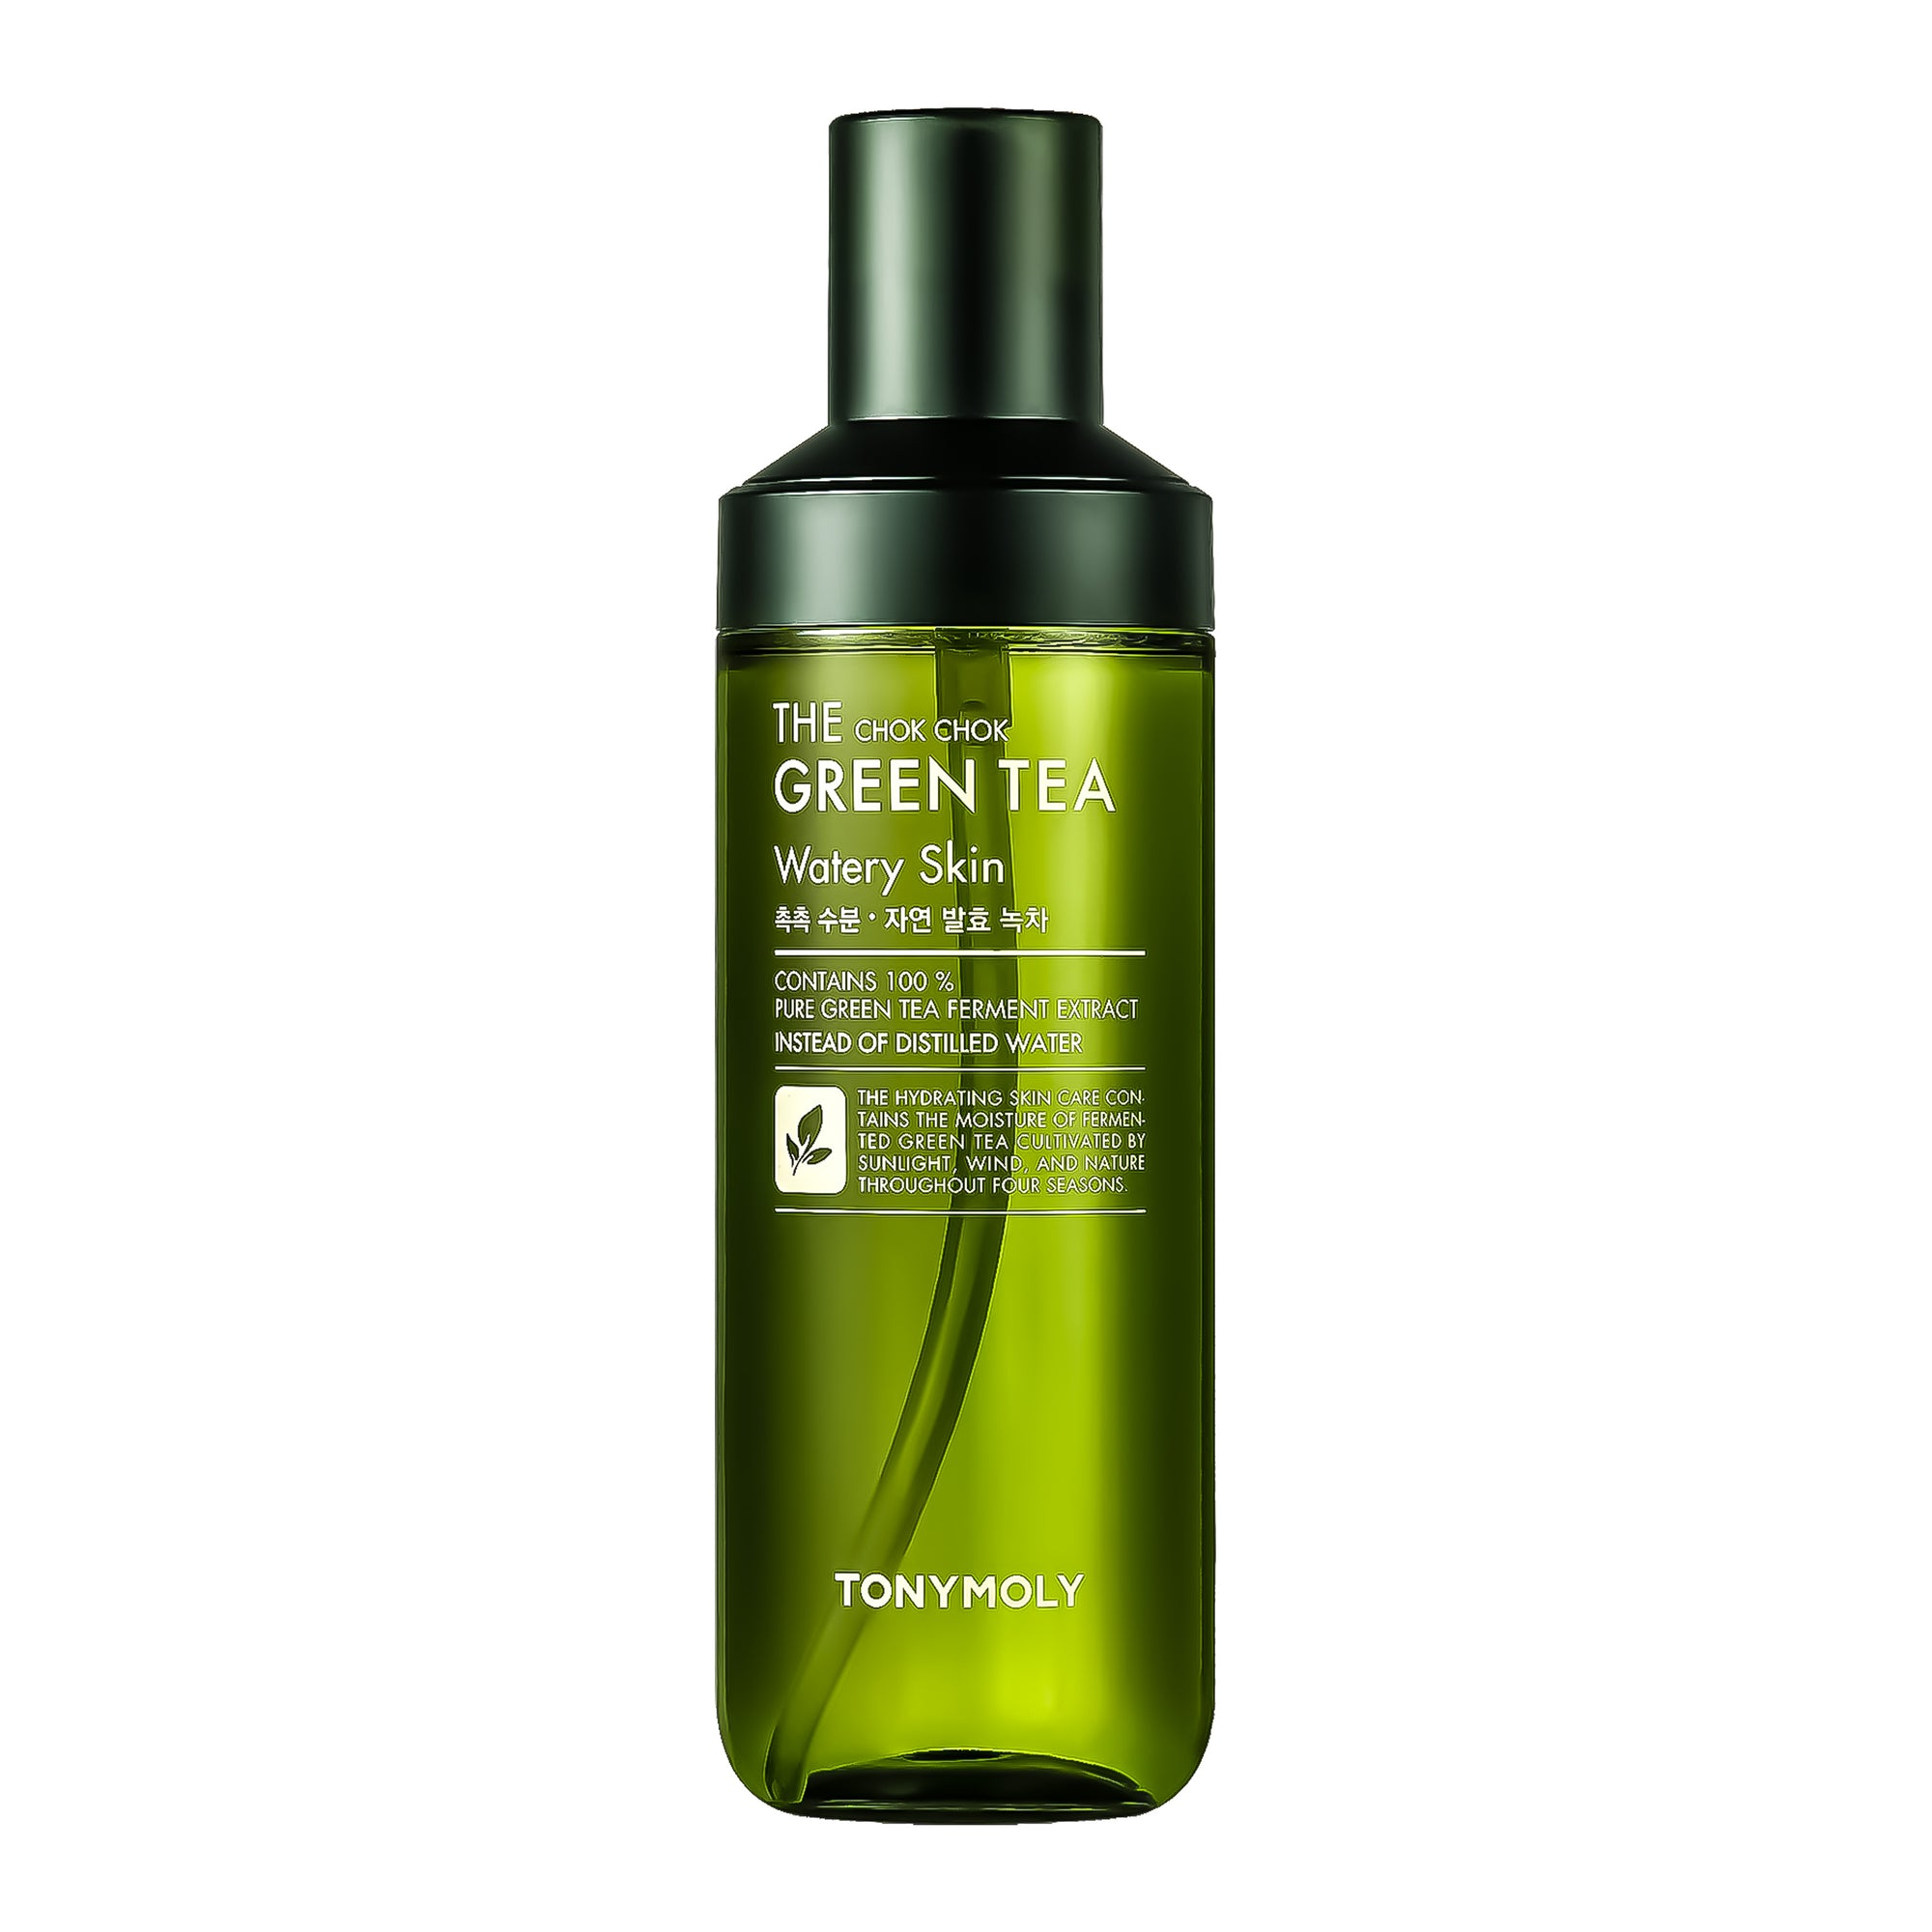 TONYMOLY The Chok Chok Green Tea Watery Skin (Toner) - 180ml | Korean Skin Care